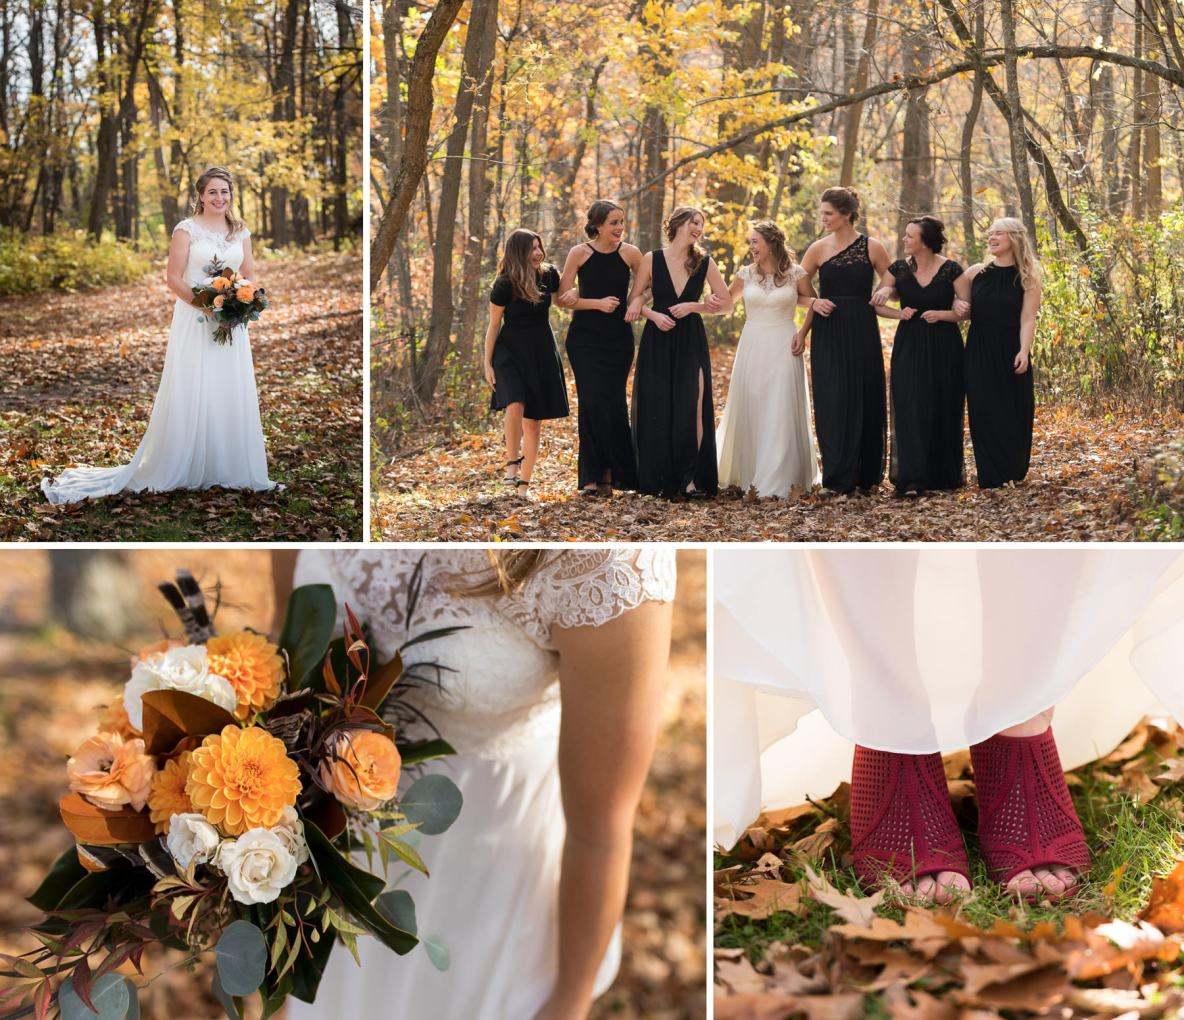 The bride and her bridesmaids out in the fall colors with flowers.